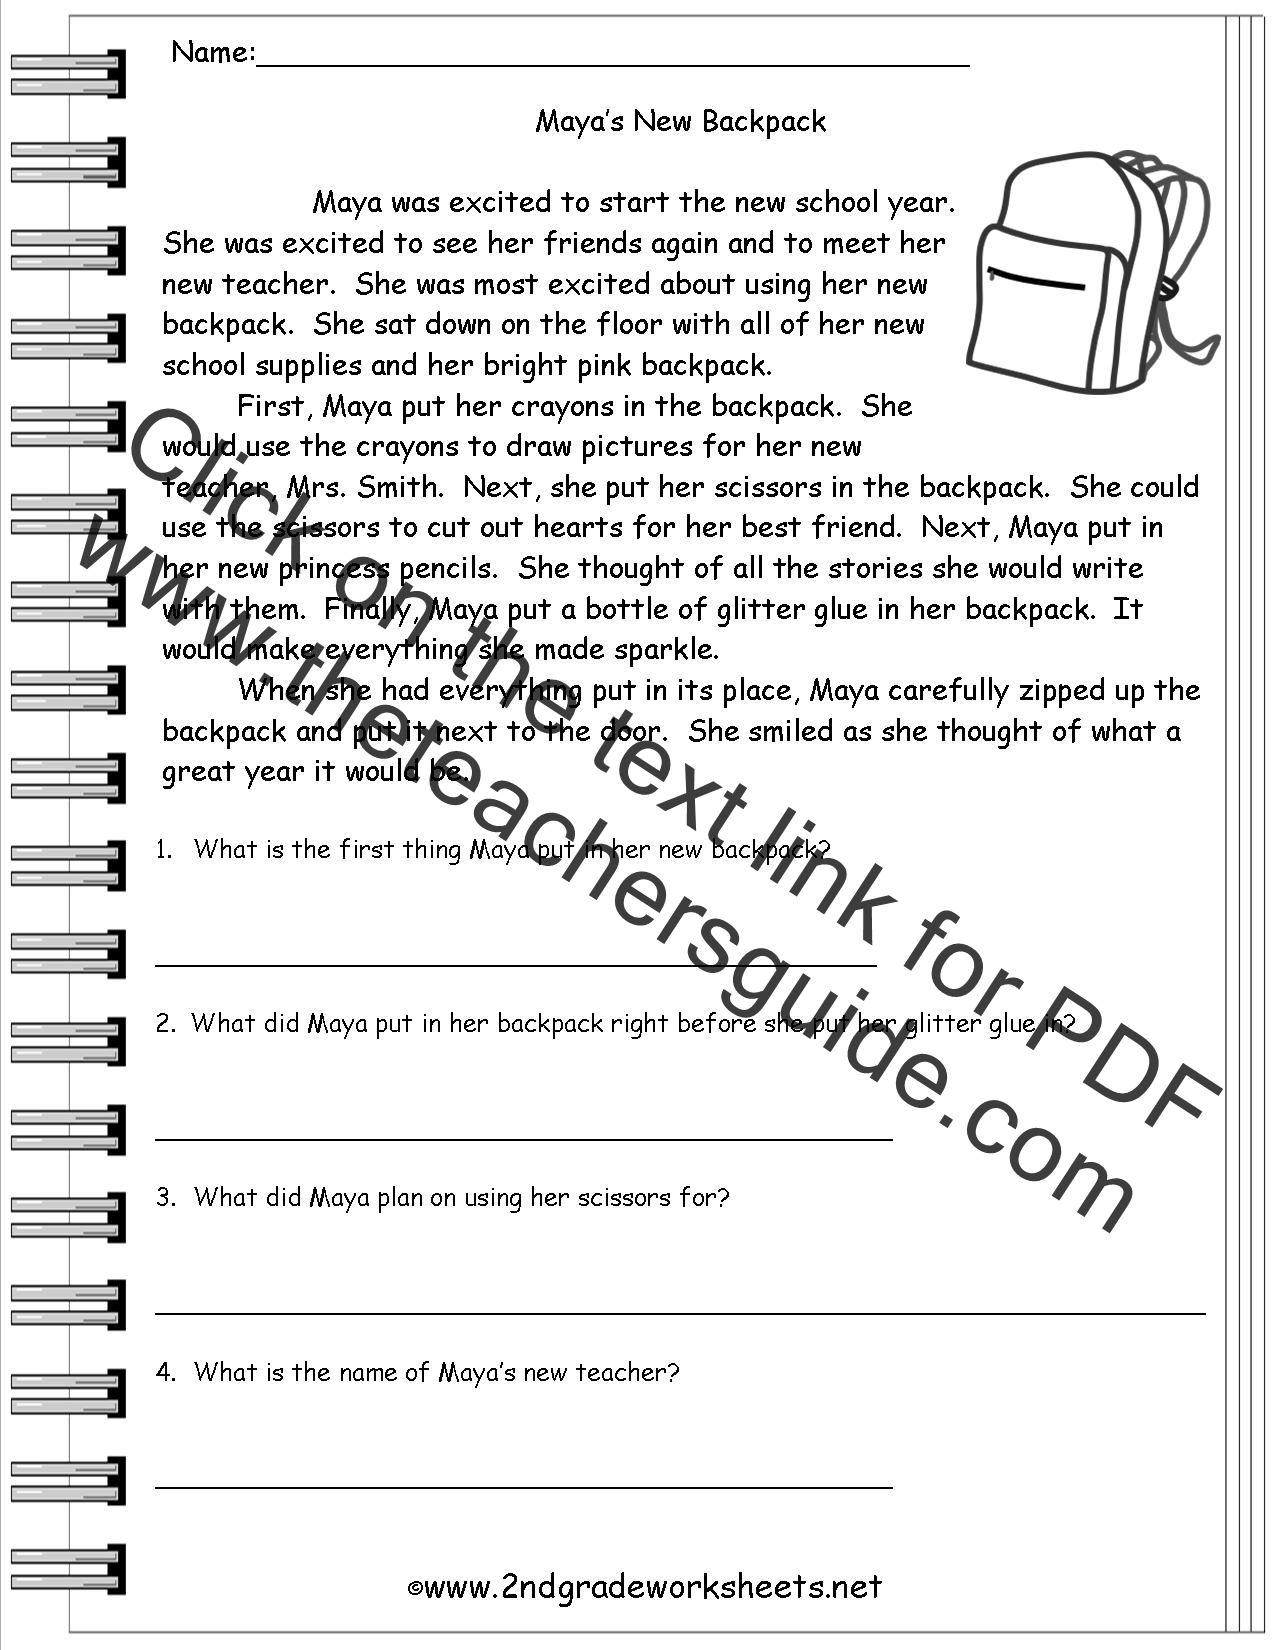 Worksheets Free 2nd Grade Comprehension Worksheets reading worksheeets worksheets